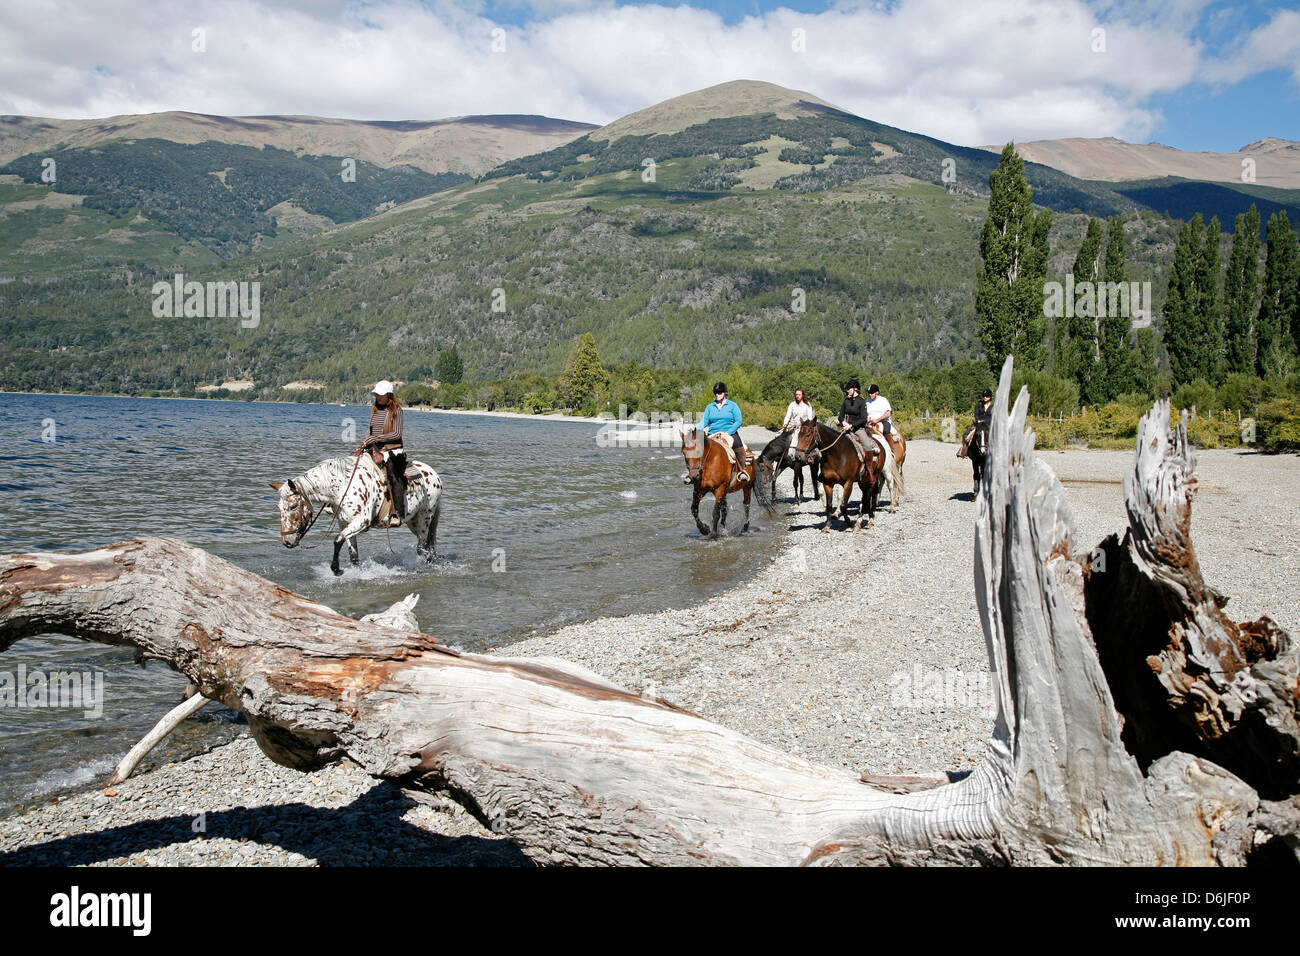 Horseback riding by Guttierez Lake in Estancia Peuma Hue, Patagonia, Argentina, South America - Stock Image